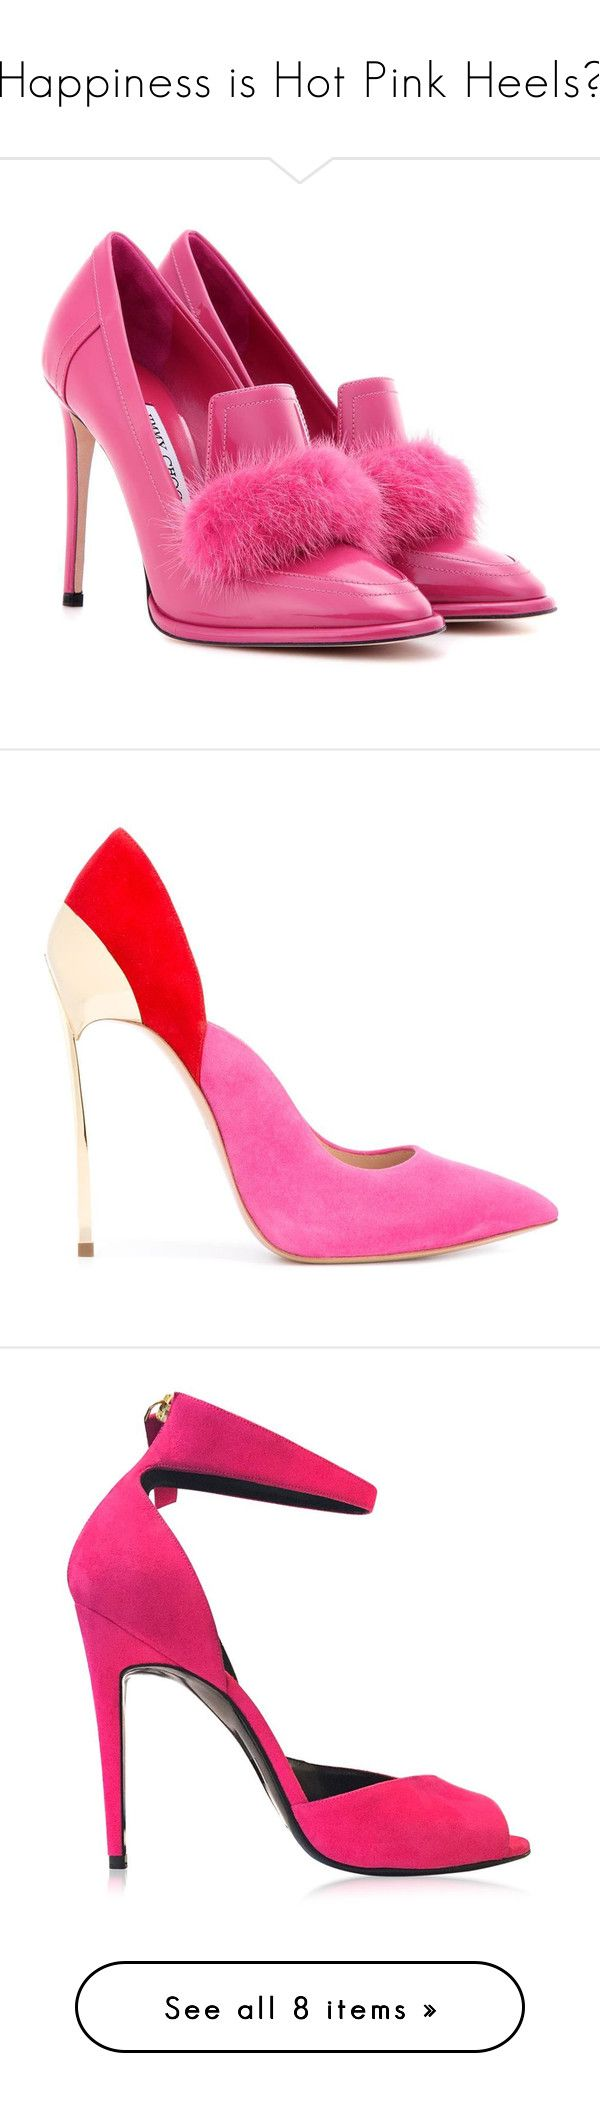 """Happiness is Hot Pink Heels?"" by piplusc ❤ liked on Polyvore featuring shoes, pumps, heels, pink, jimmy choo shoes, pink pumps, pink heeled shoes, heel pump, jimmy choo and casadei pumps"